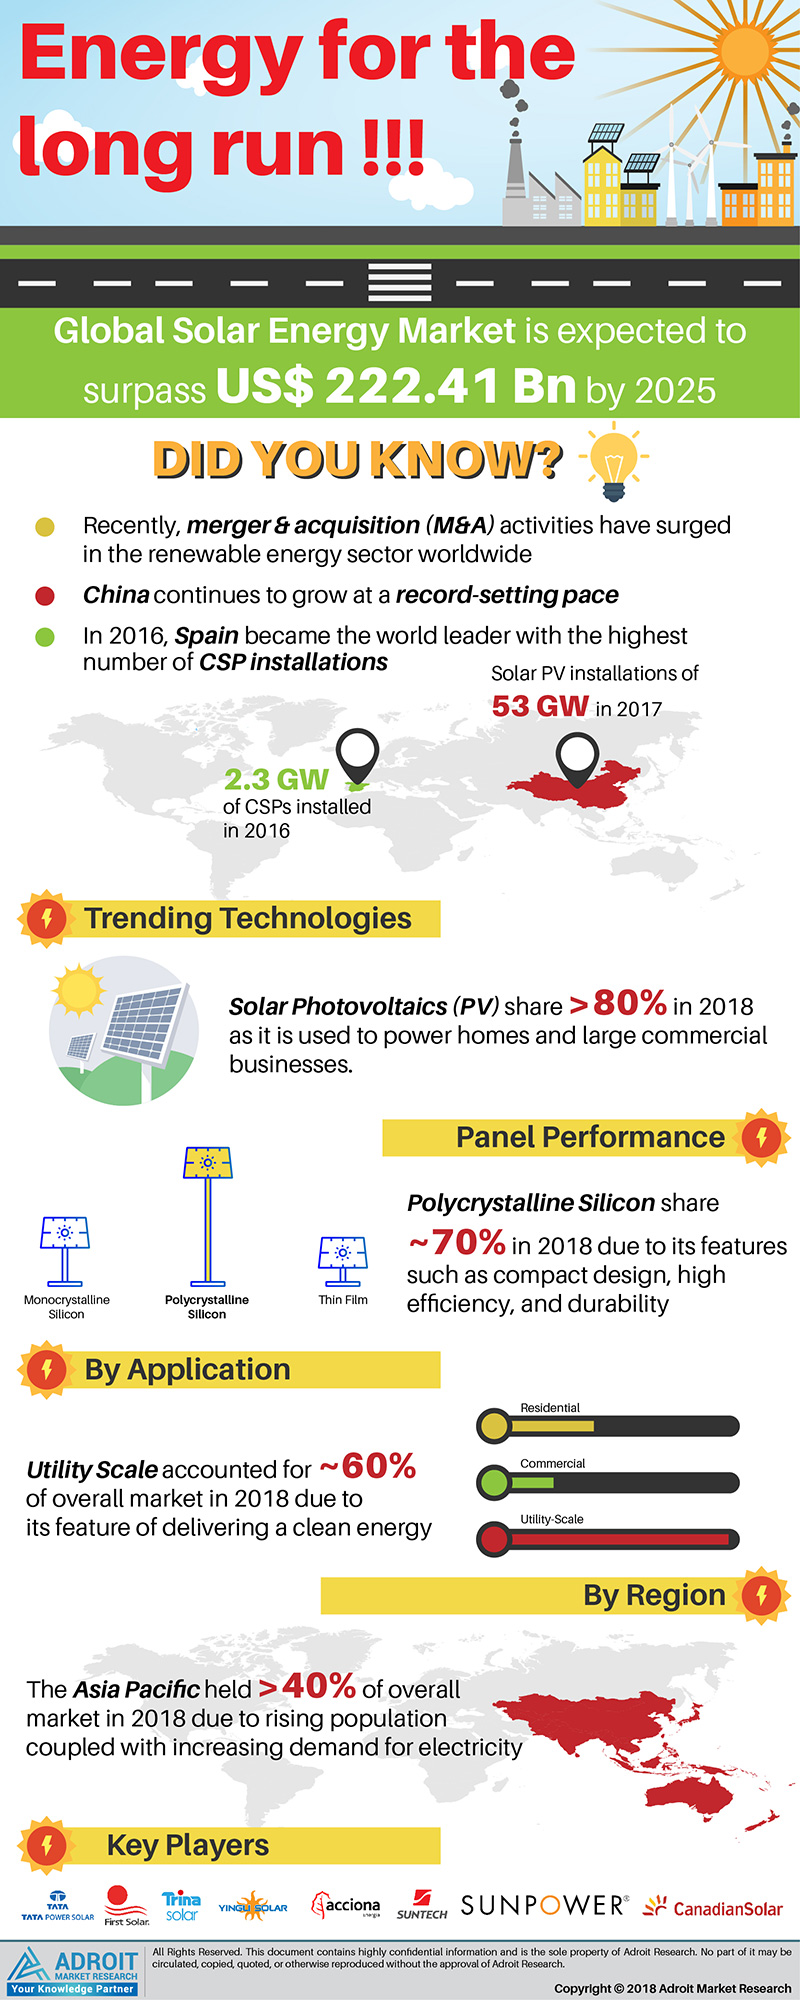 Global Solar Energy Market Size 2018 by Technology, Panel, Application, Region and Forecast 2019 to 2025